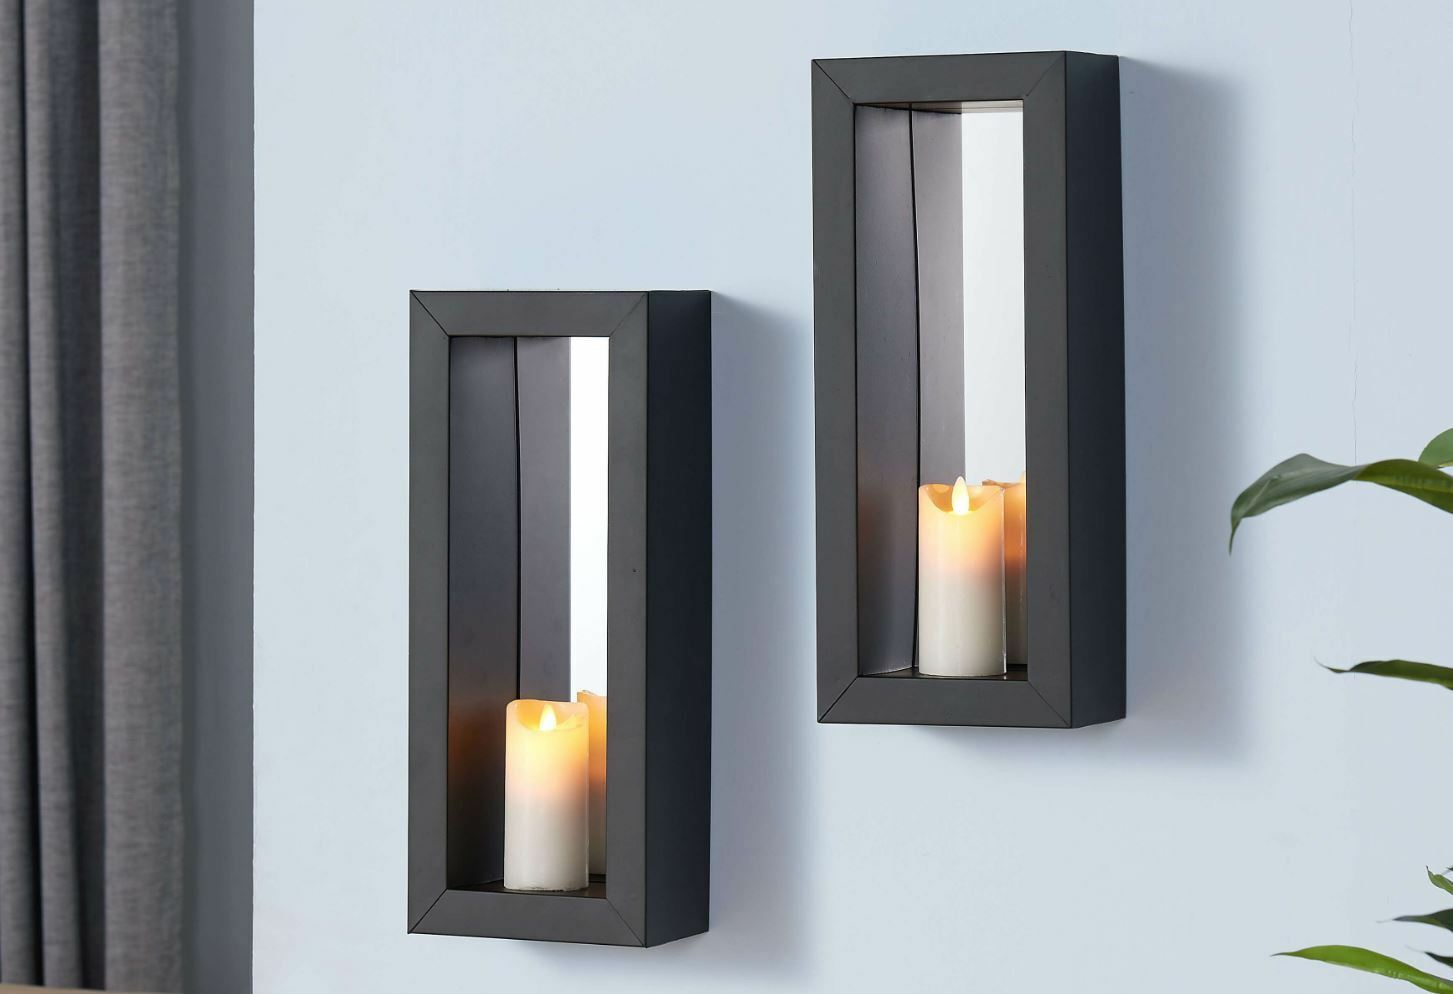 2 Mirror Candle Wall Sconce Holder Set Metal Pair Decor ... on Wall Sconces Candle Holders id=99122